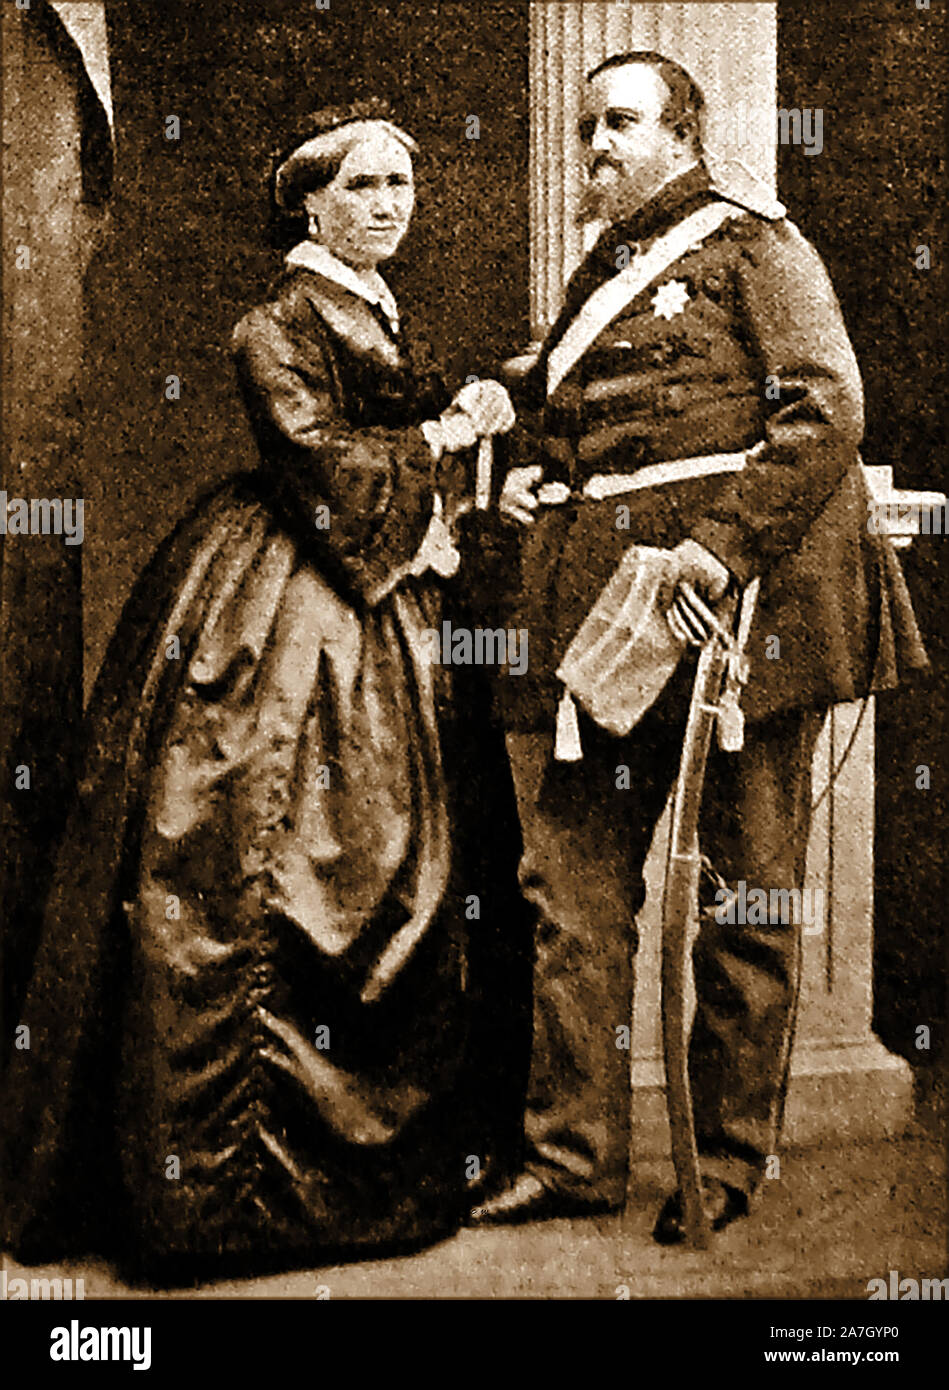 A portrait of King Frederic VII of Denmark (Frederik Carl Christian 1808-1863)  with his Consort Louisa Christina Rasmussen, whom he created Landgravine Danner in 1850 ( Lensgrevinde Danner) She was formerly  a milliner, ballet dancer and the King's alleged  mistress Stock Photo